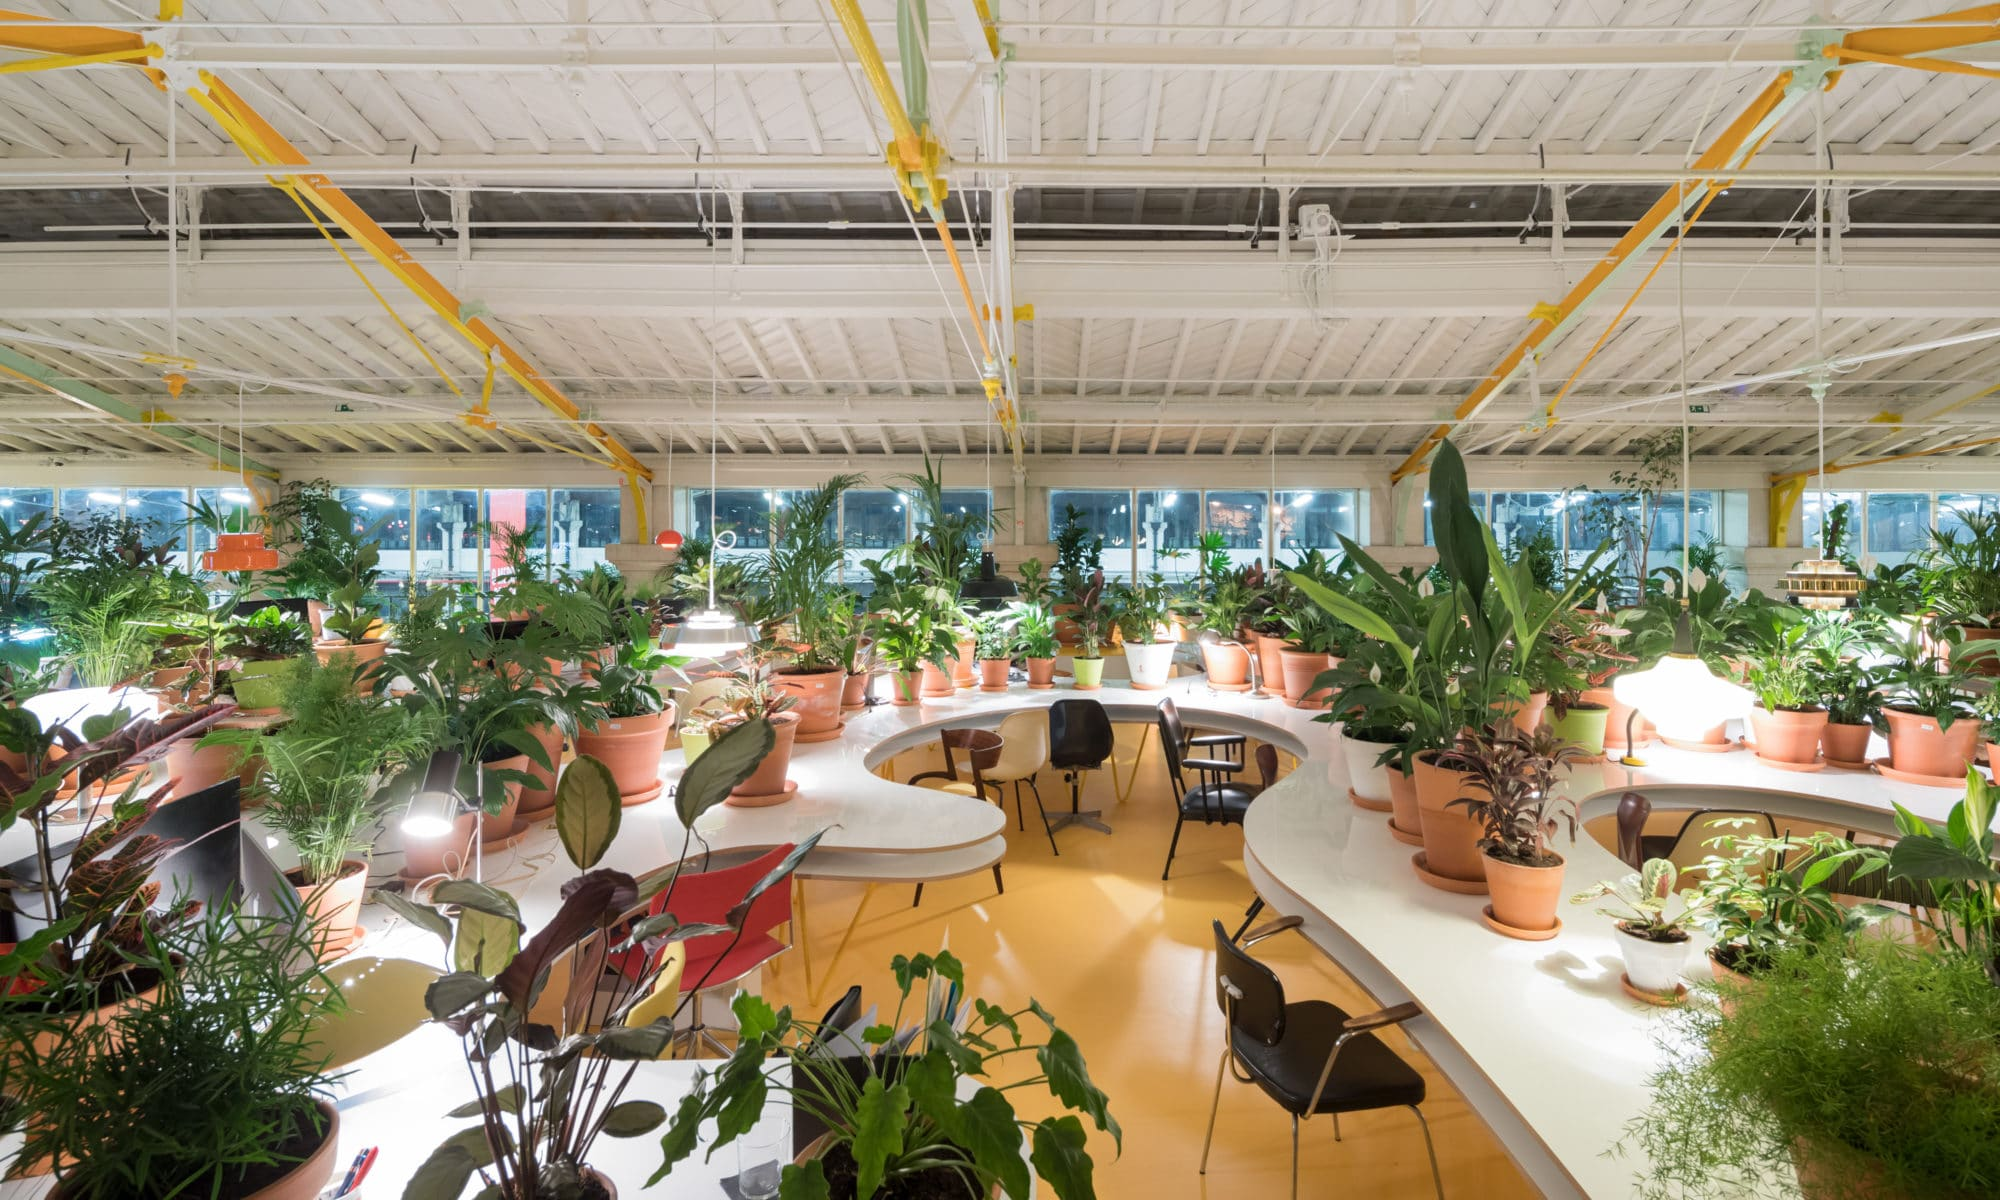 Desks in co-working space covered in potted plants